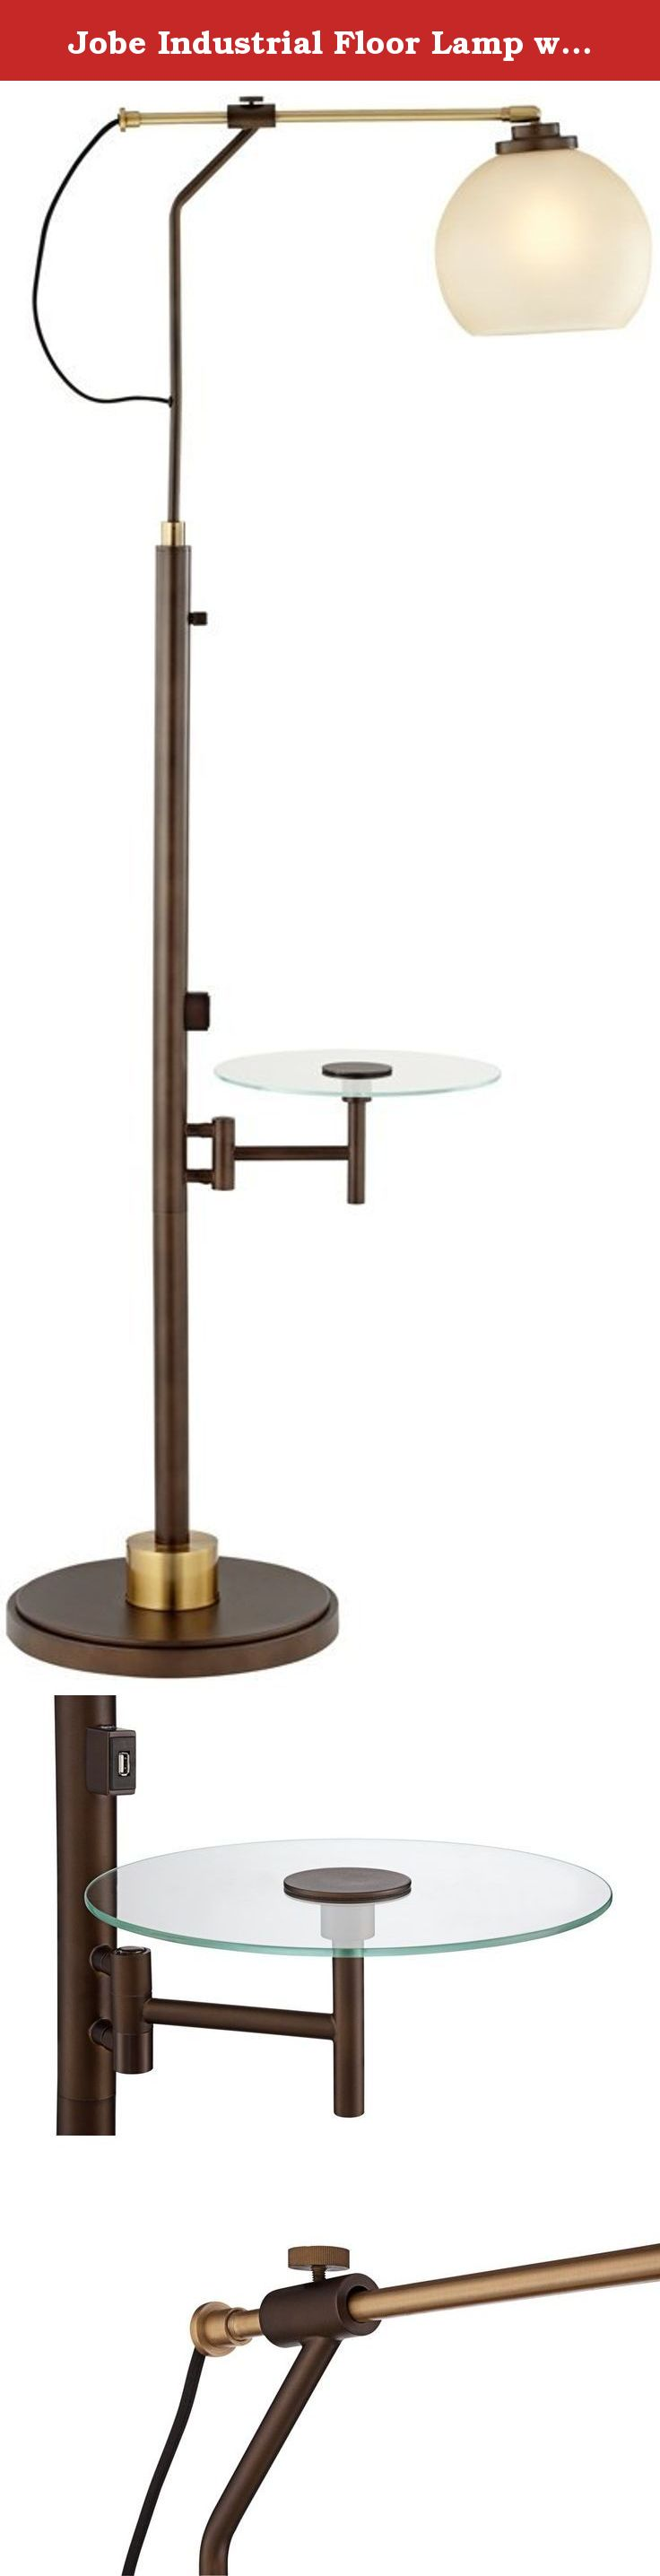 Jobe Industrial Floor Lamp With Tray Table And Usb Port The Perfect Addition To An Entertaining Or Living Room Area Th Industrial Floor Lamps Floor Lamp Lamp